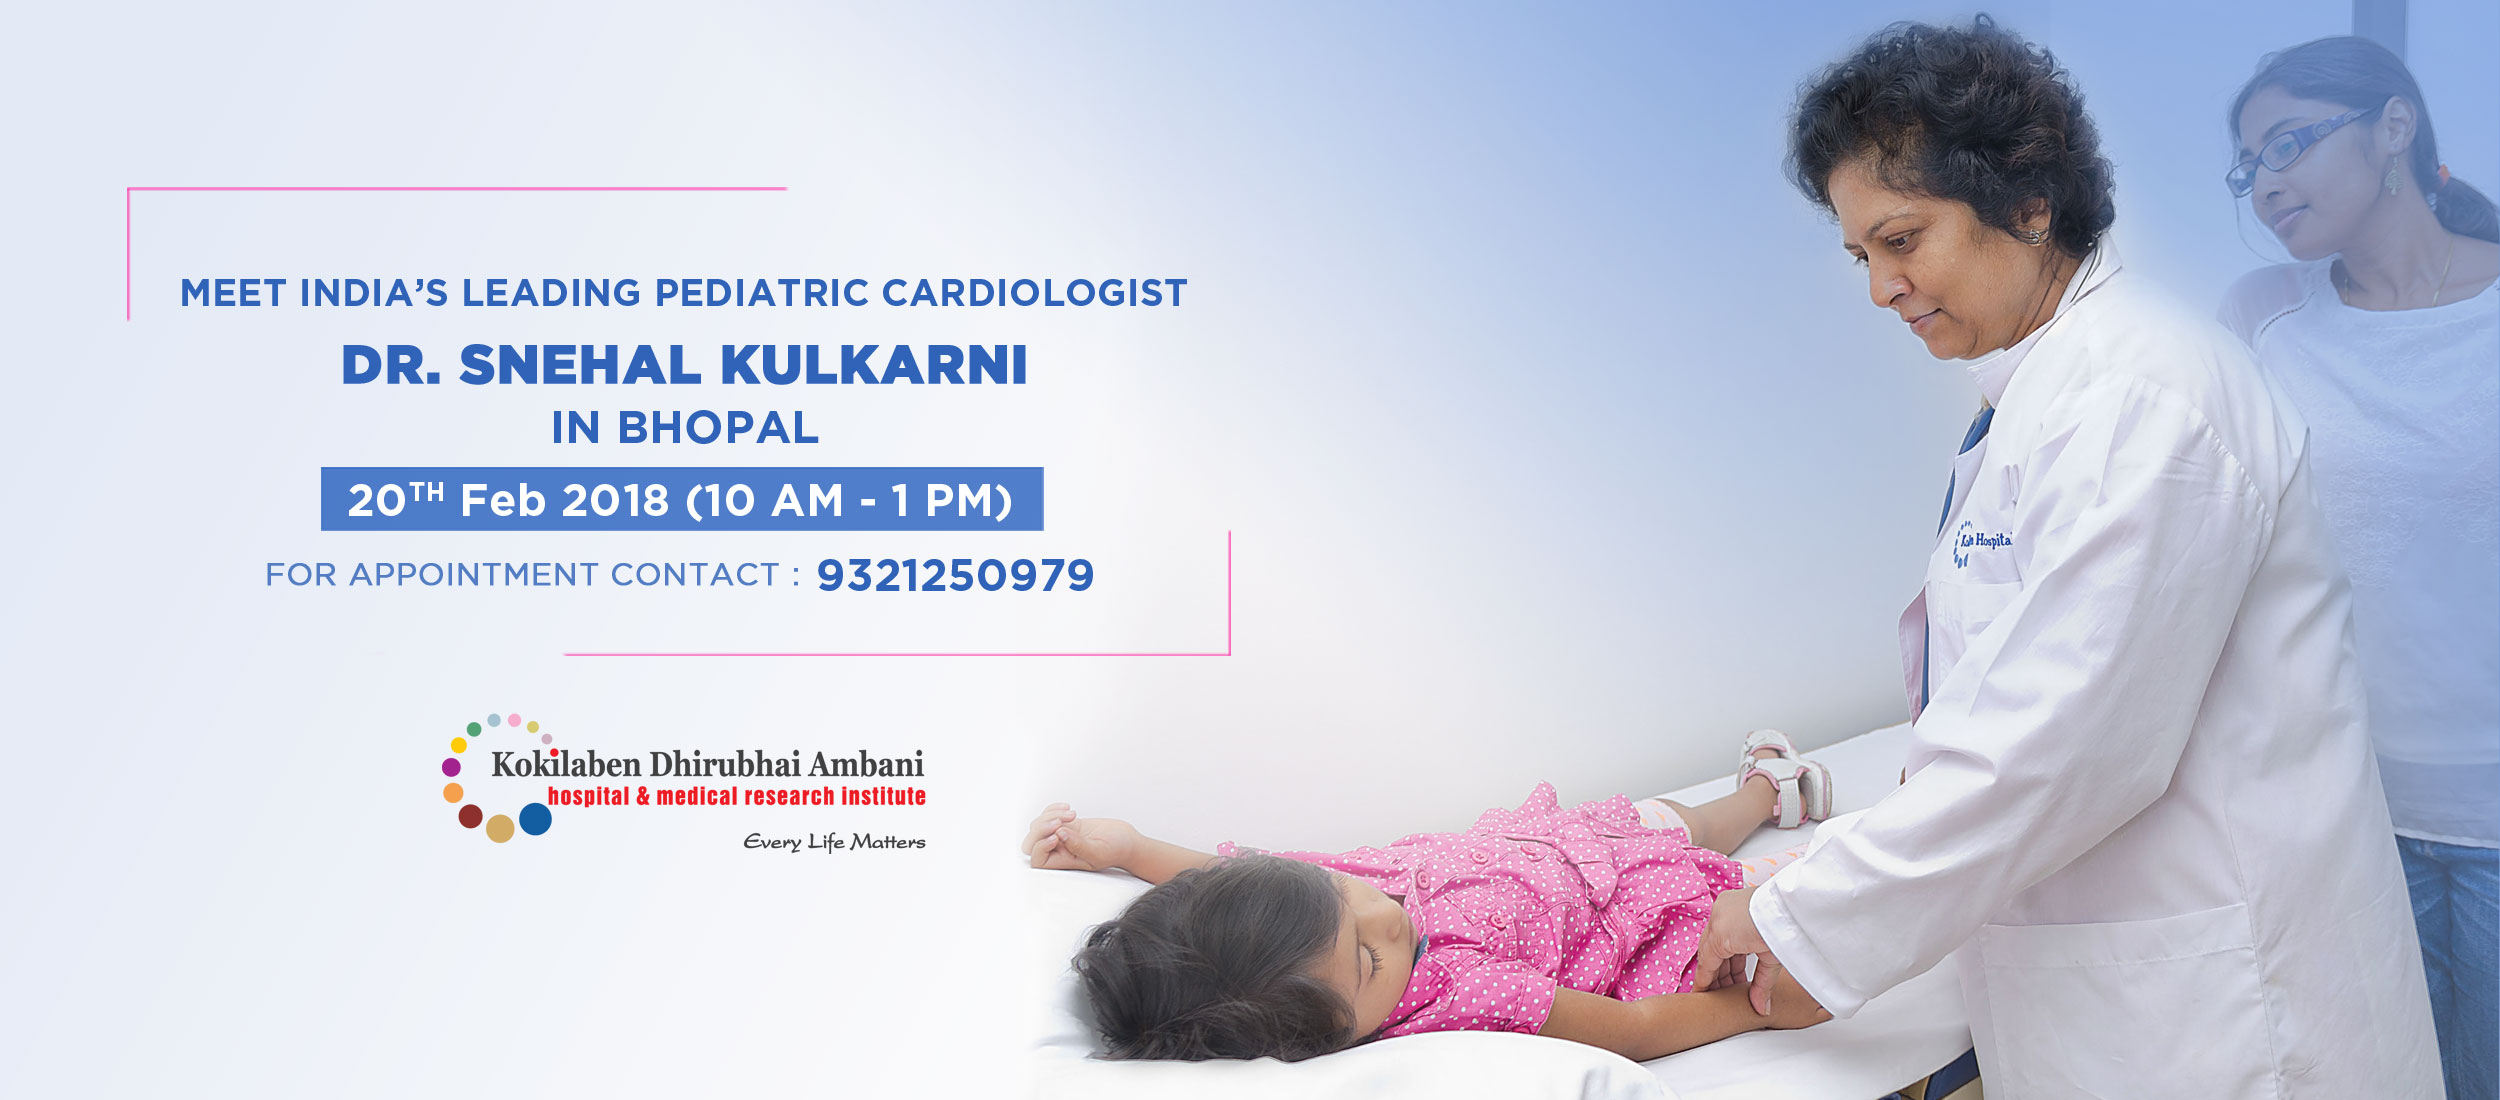 Meet Indias Leading Pediatric Cardiologist